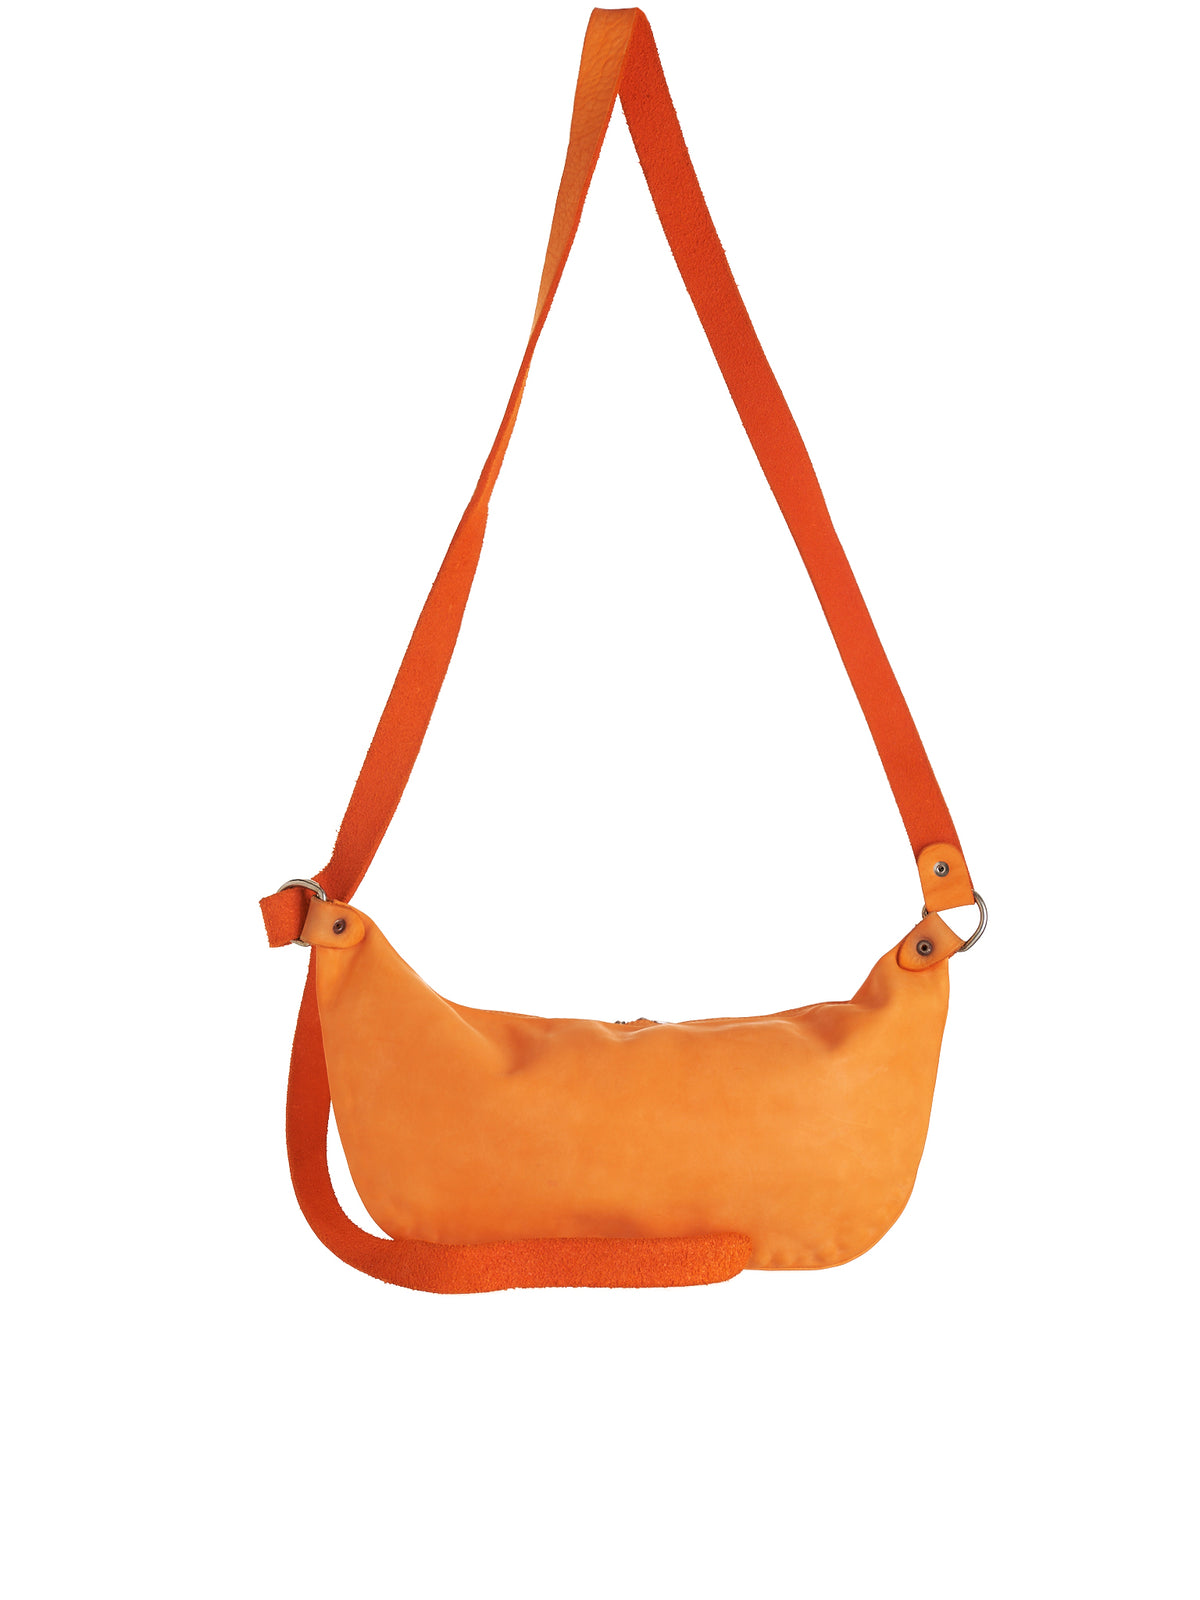 Q10M Horse Leather Bag (Q10M-HORSE-FG-NEON-ORANGE)